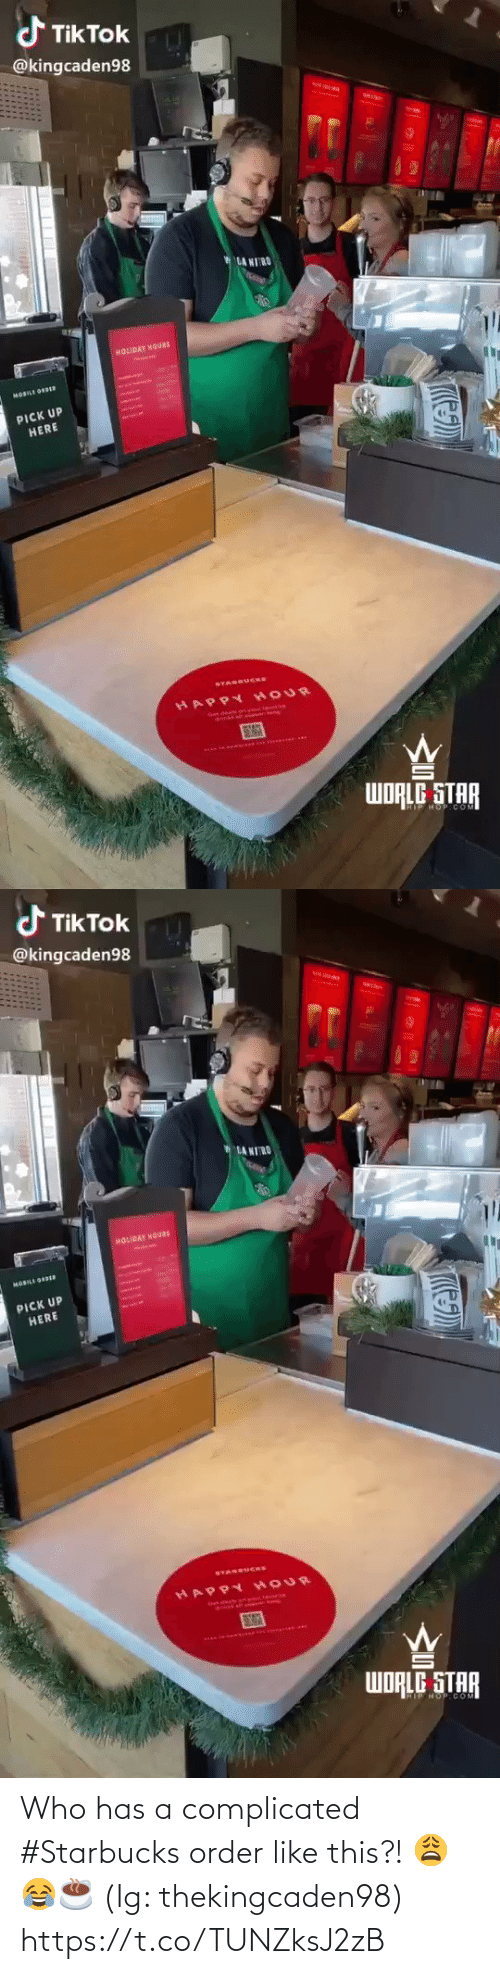 holiday: d TikTok  @kingcaden98  LA MIRO  HOLIDAY MOURS  AntAeBet  MOBILE ORDR  PICK UP  HERE  STARBUCKS  HAPPY HOUR  SY  PAN TO.A  WORLE STAR  HOP COM  T   d TikTok  @kingcaden98  MIN  LA NIRO  HOLIDAY MOURS  HOBILI ODE  PICK UP  HERE  SYAREUCHS  HAPPY HOUR  WORLE STAR  HOP COM  T Who has a complicated #Starbucks order like this?! 😩😂☕️ (Ig: thekingcaden98) https://t.co/TUNZksJ2zB